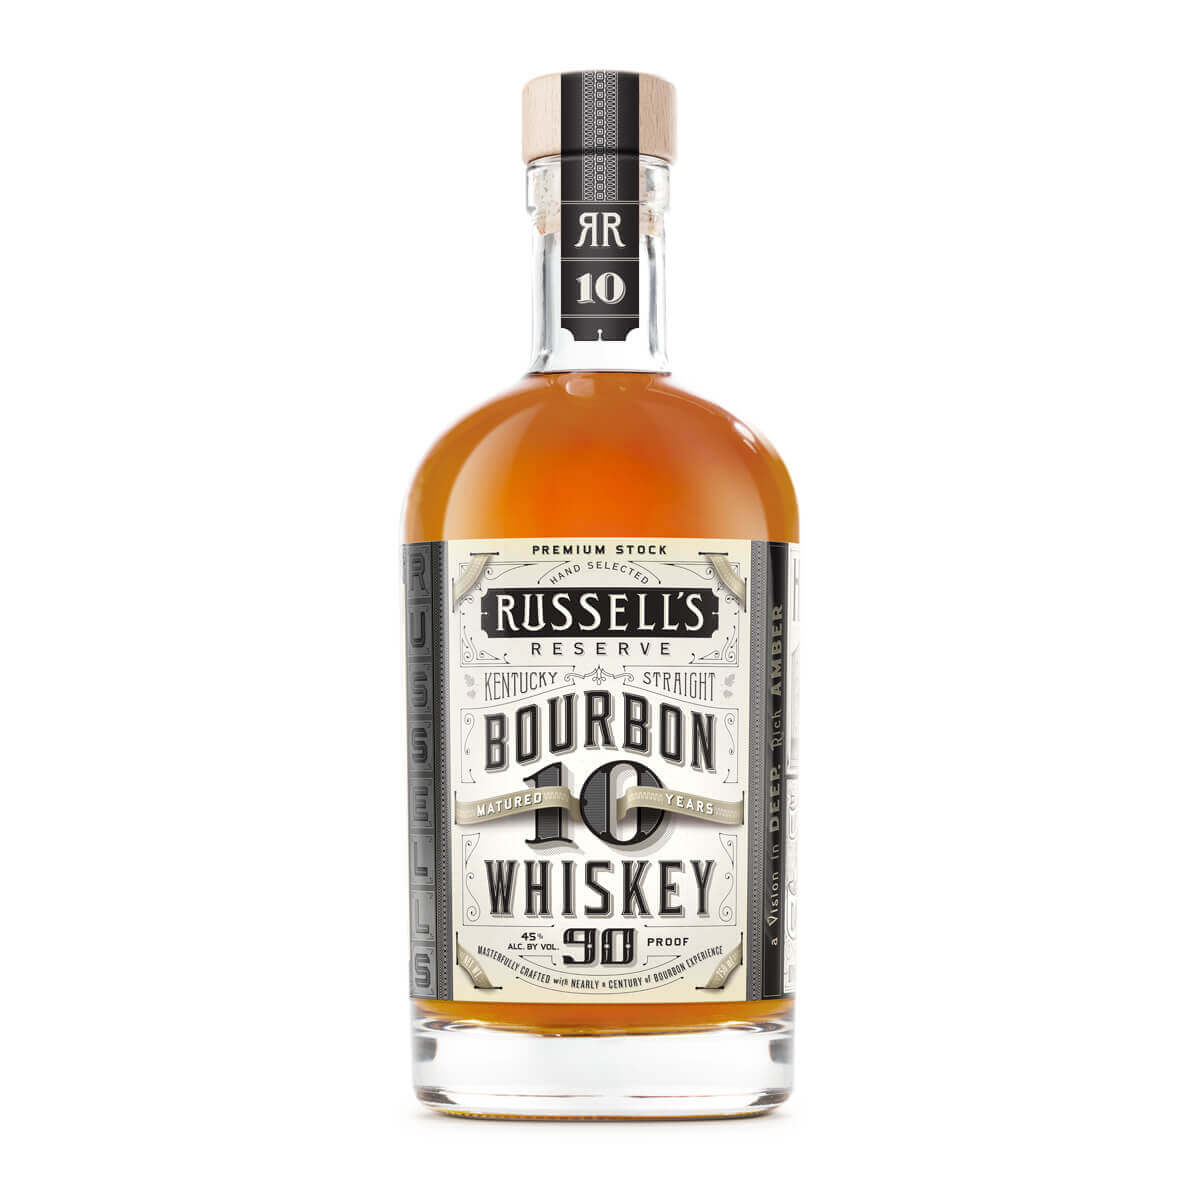 Russell's Reserve Packaging Concept Hero Image